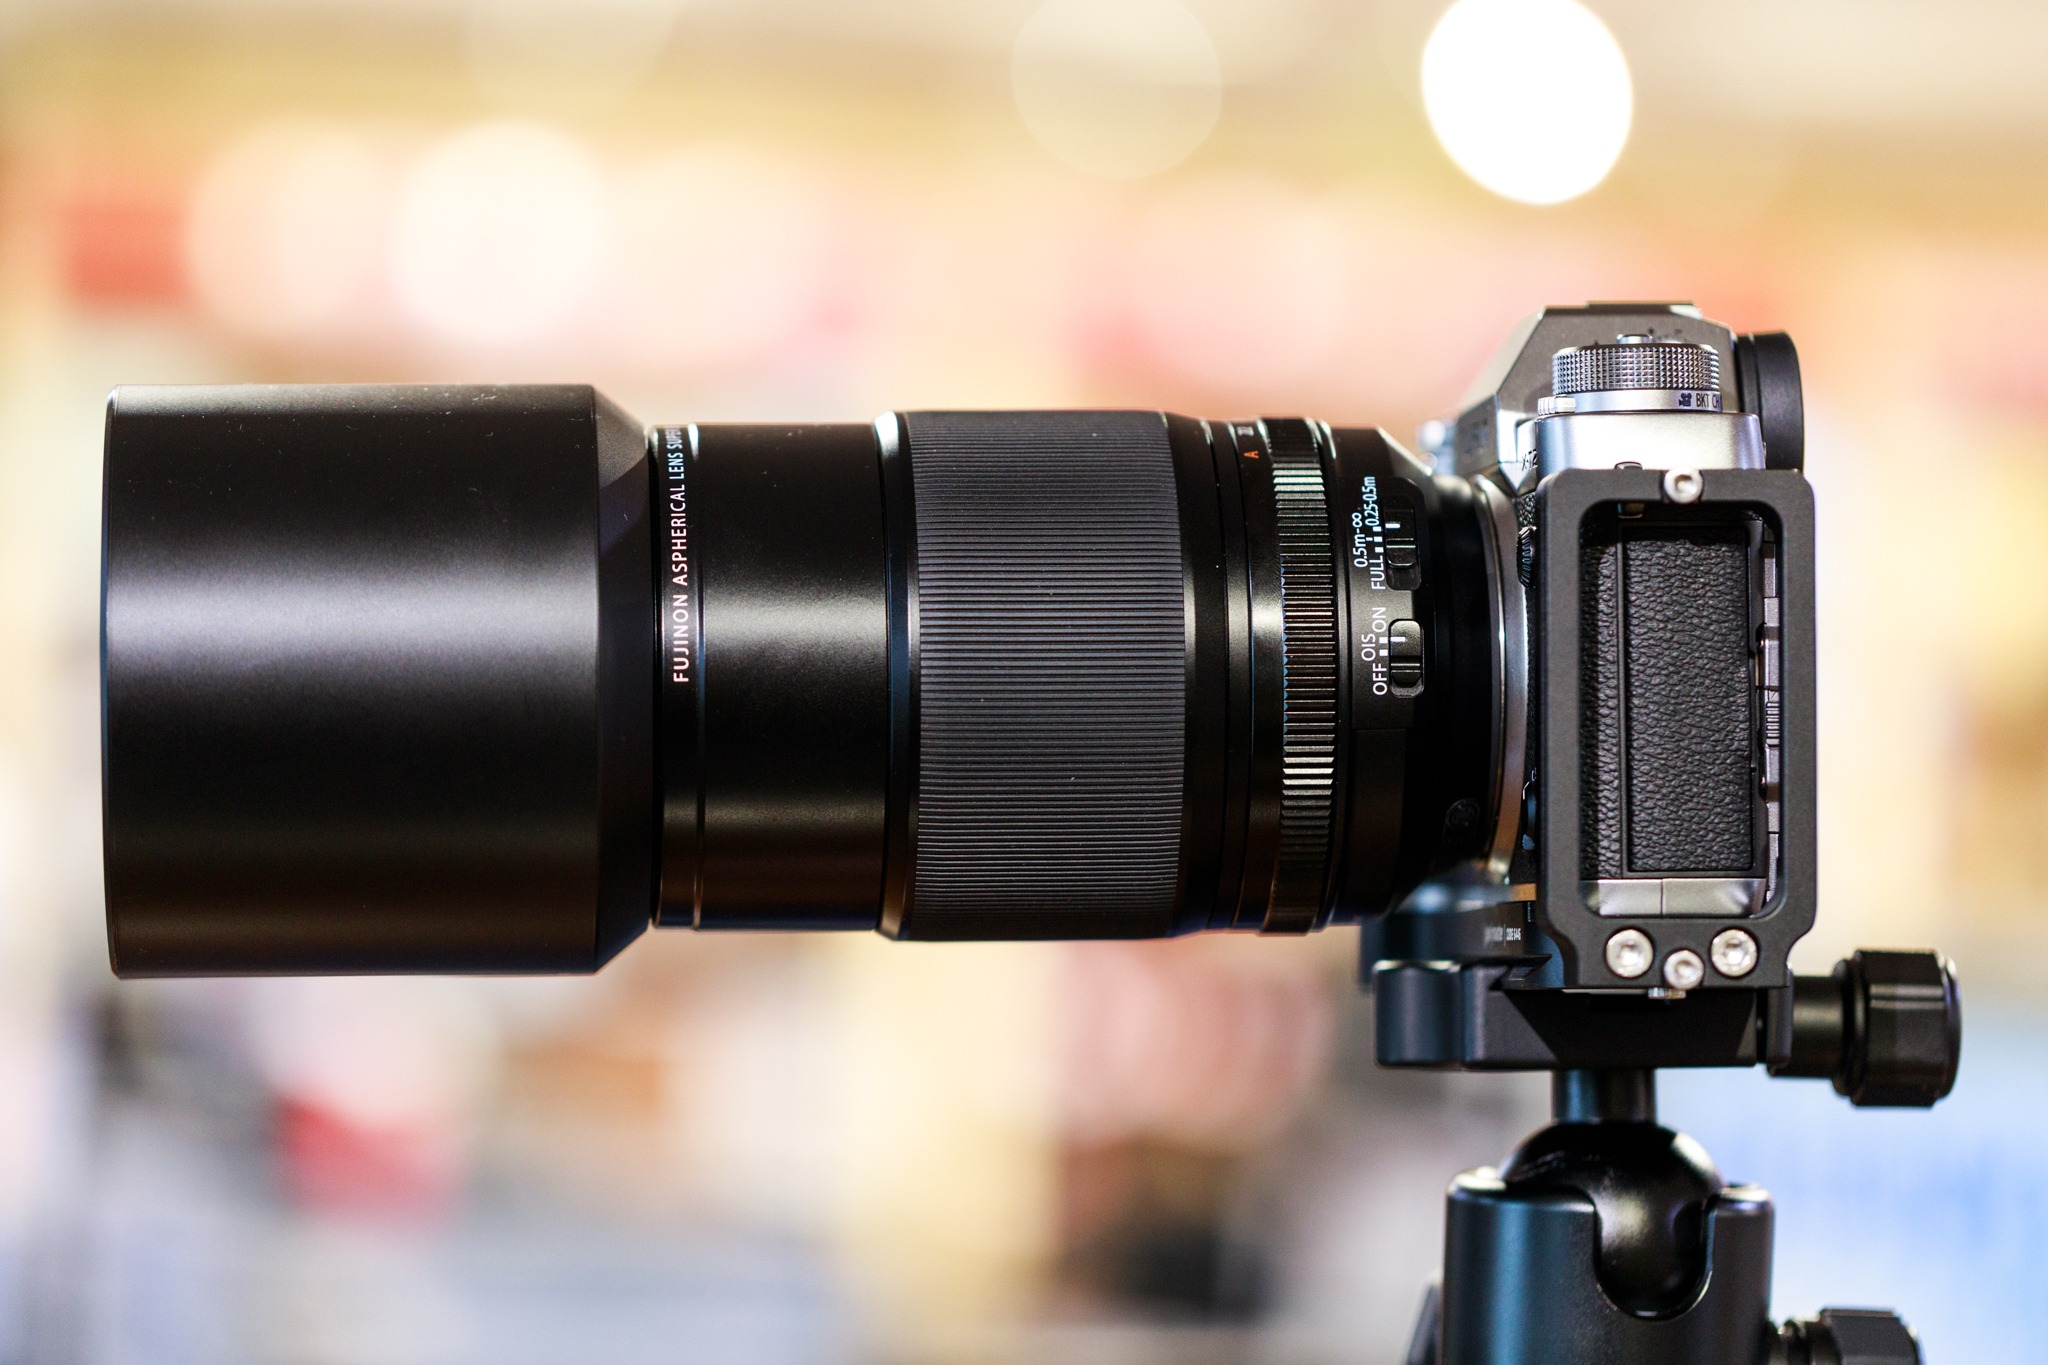 A first look at the Fuji XF 80mm f2.8 Macro